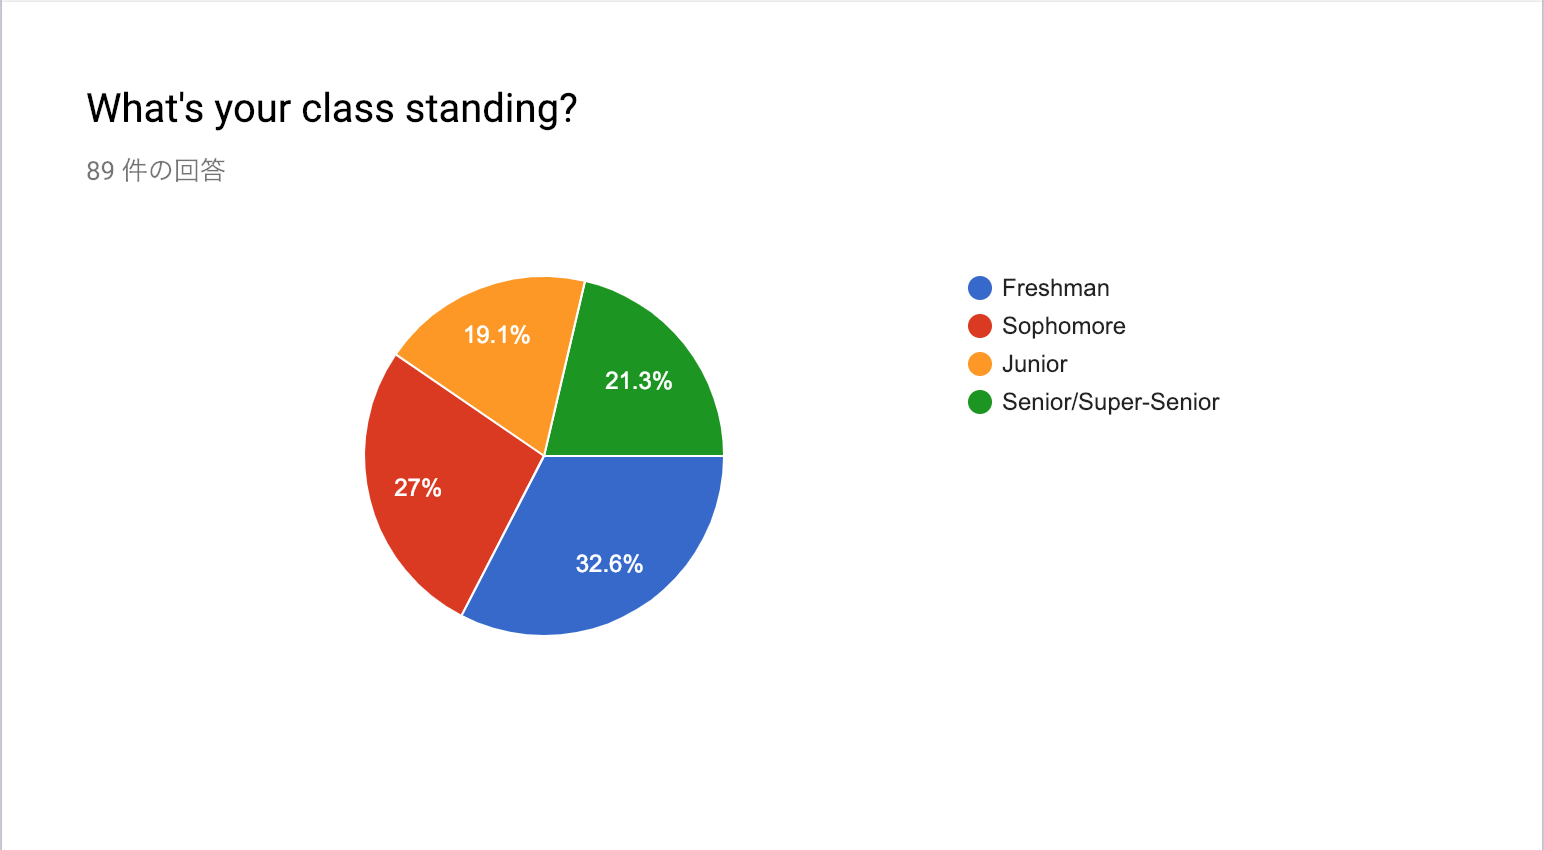 Even distribution across all class standings